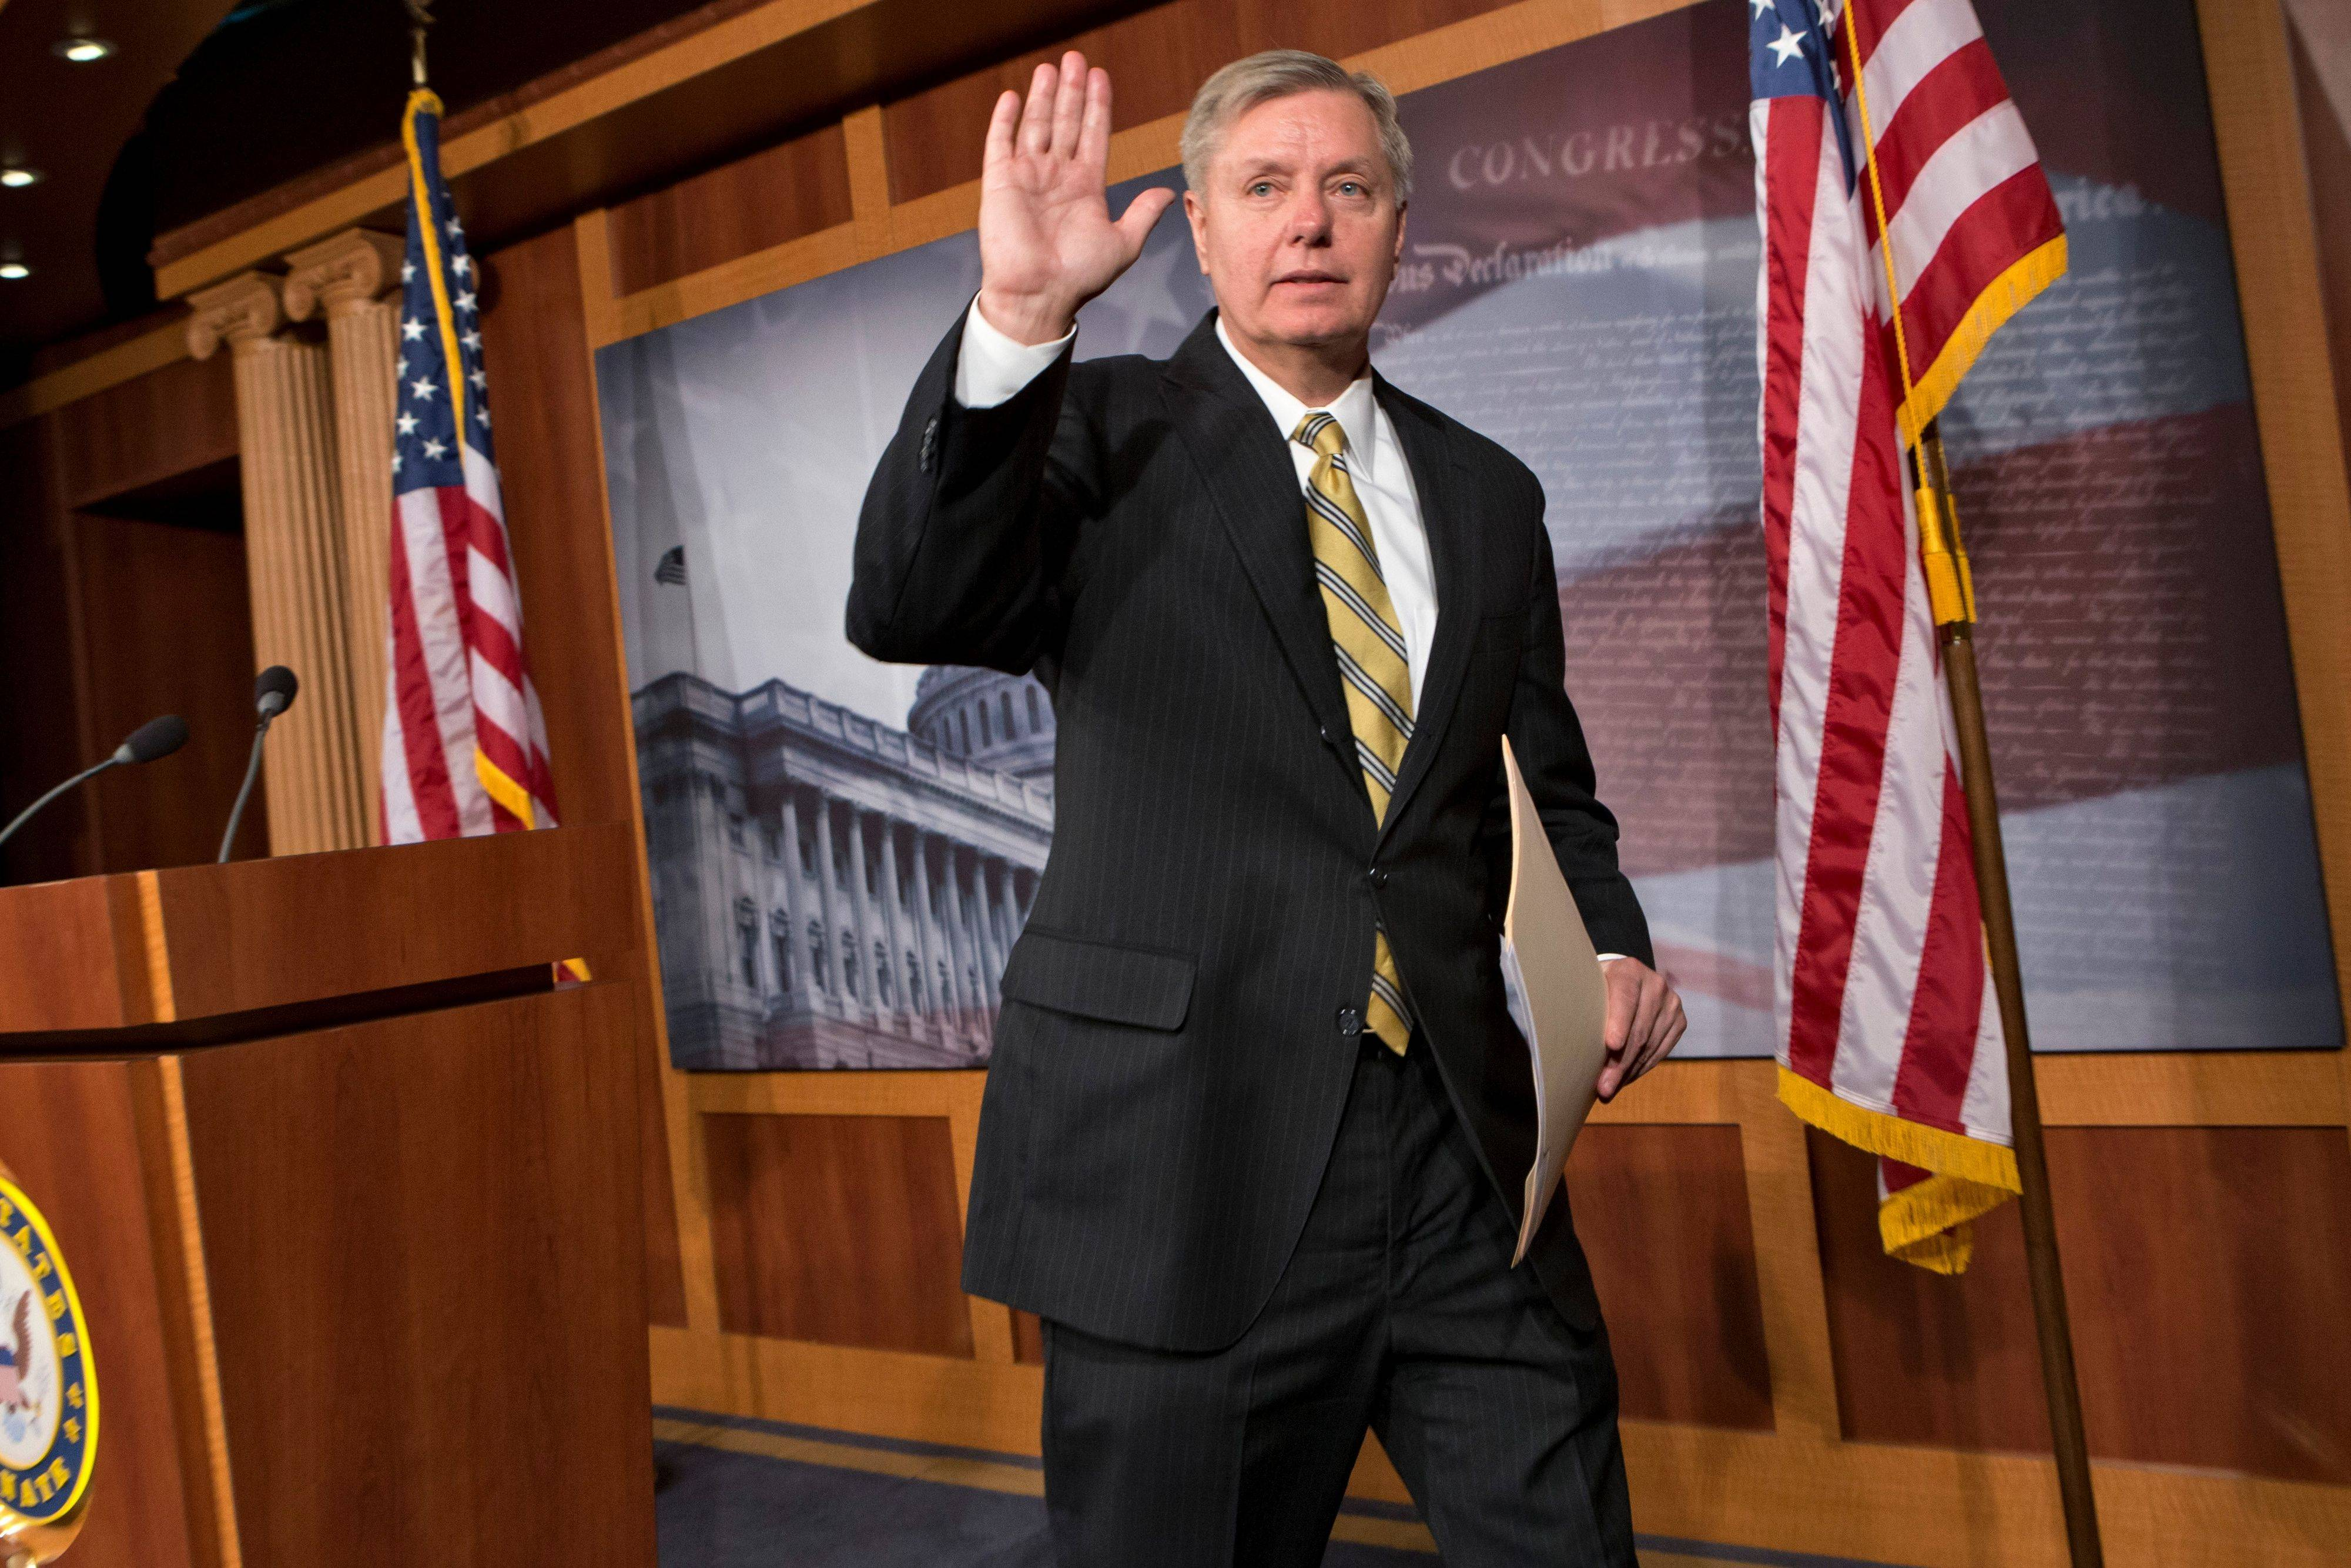 Sen. Lindsey Graham of South Carolina and 11 other Republican senators were invited to dinner by President Barack Obama Wednesday to address political gridlock.